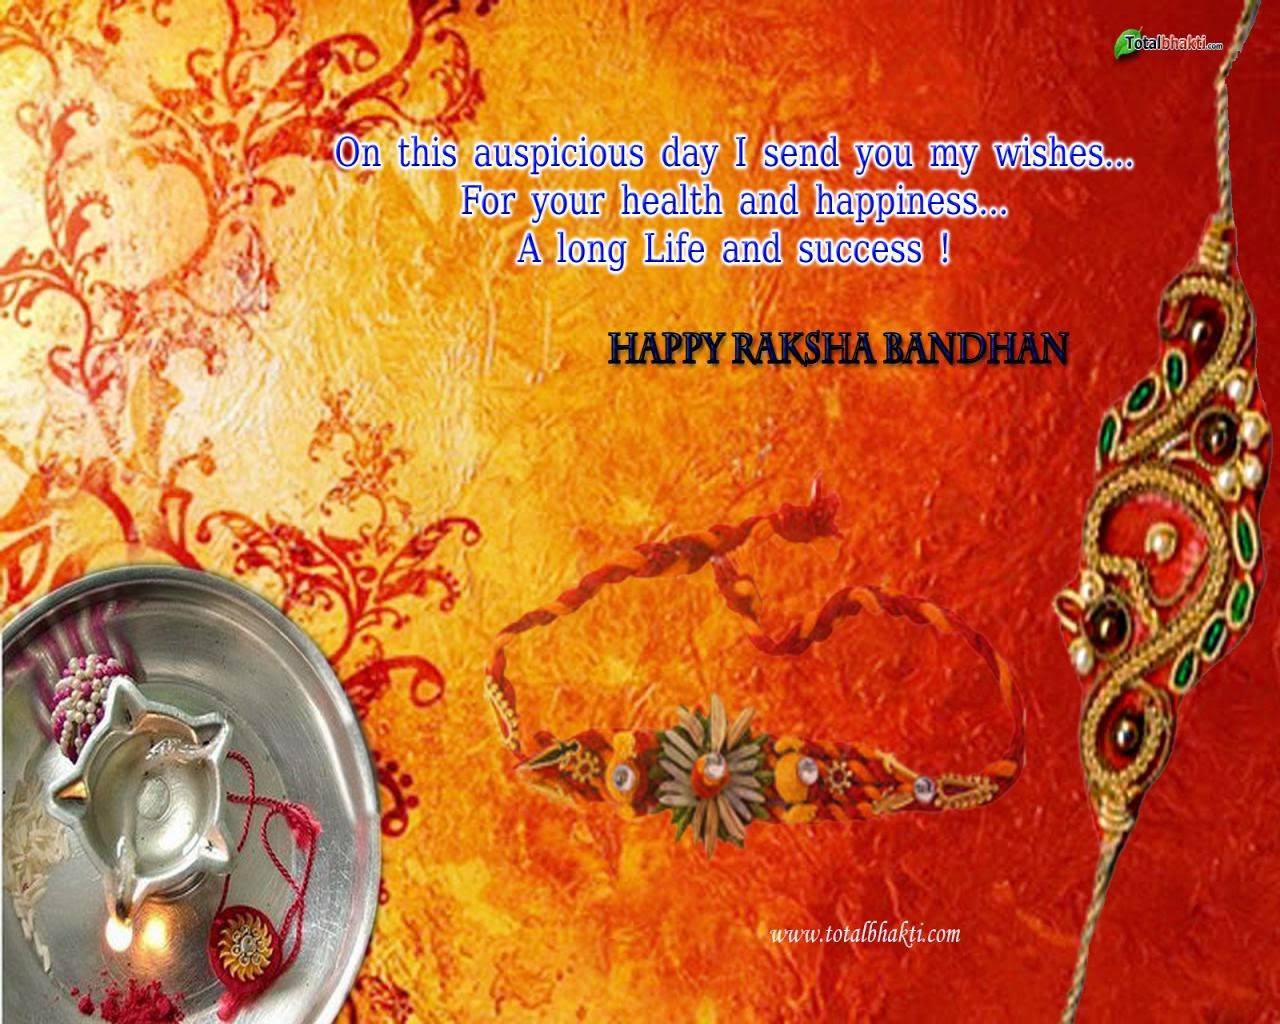 Best Quotes For Brother On Raksha Bandhan: Raksha Bandhan Quotes For Brother